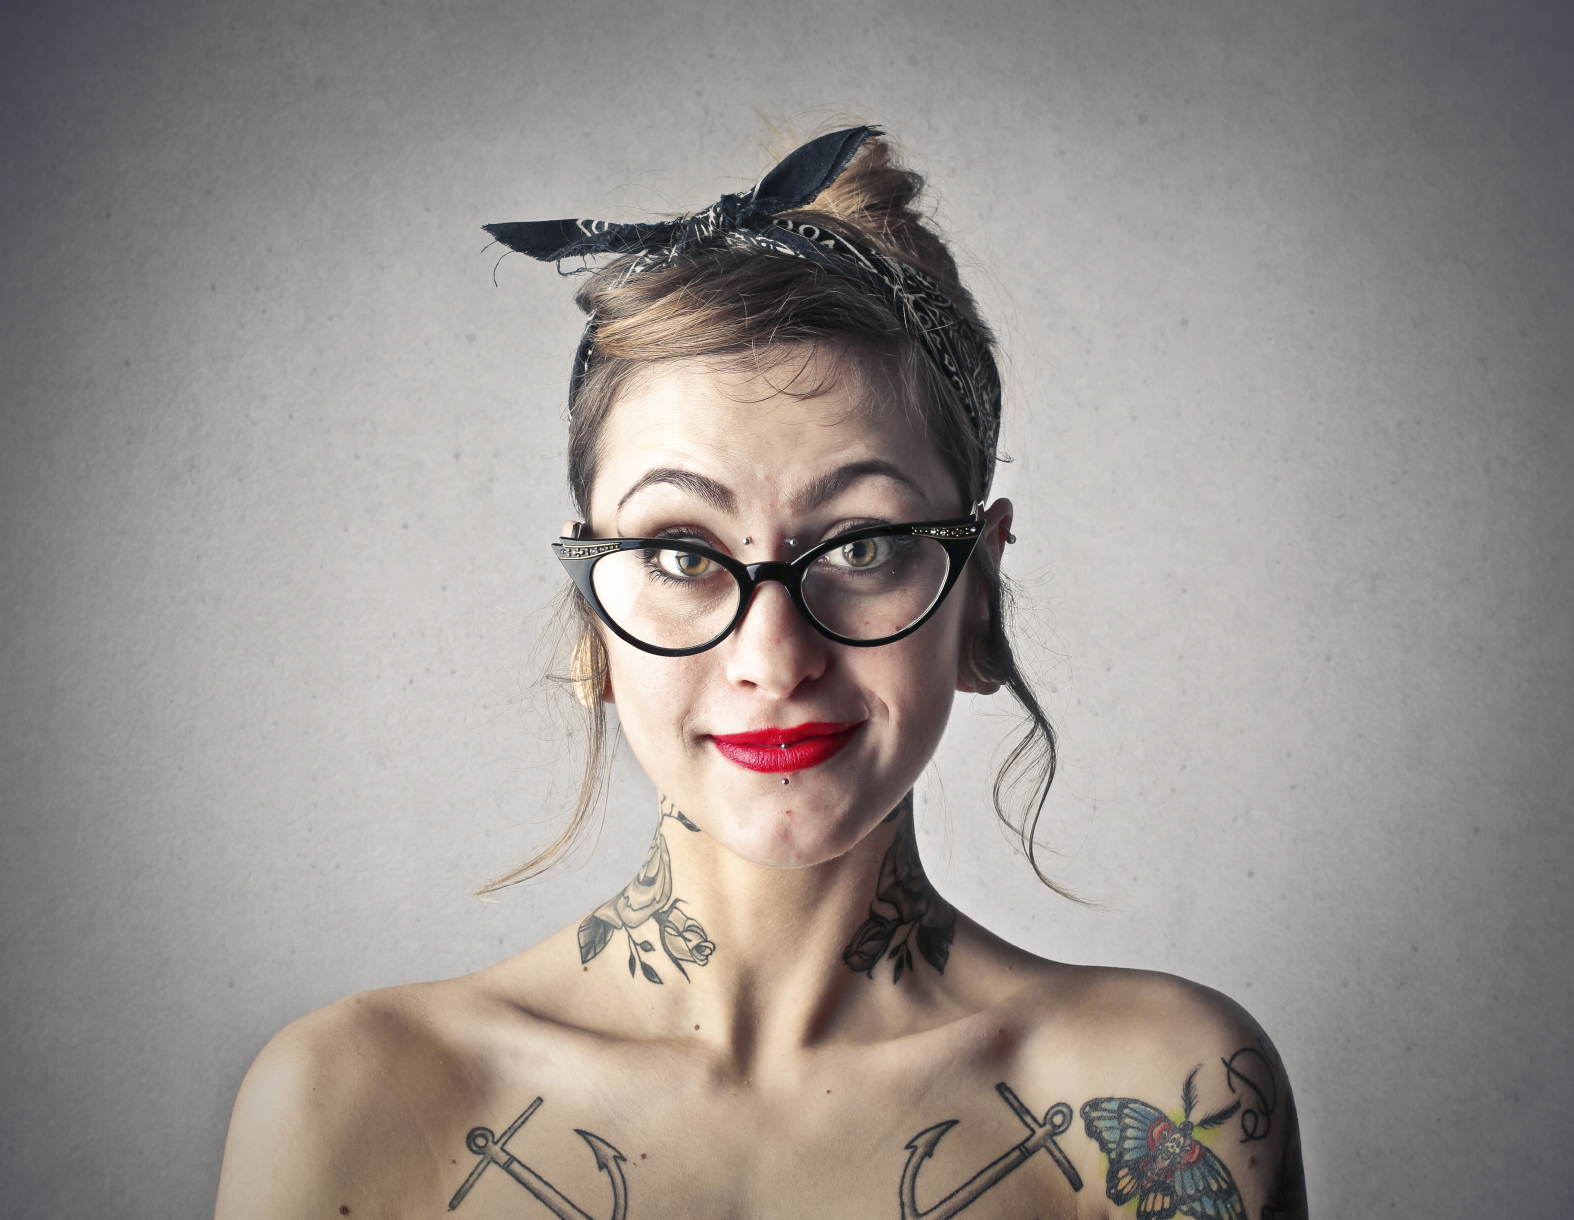 lady_with_tattoos_iStock_000053684088_Medium